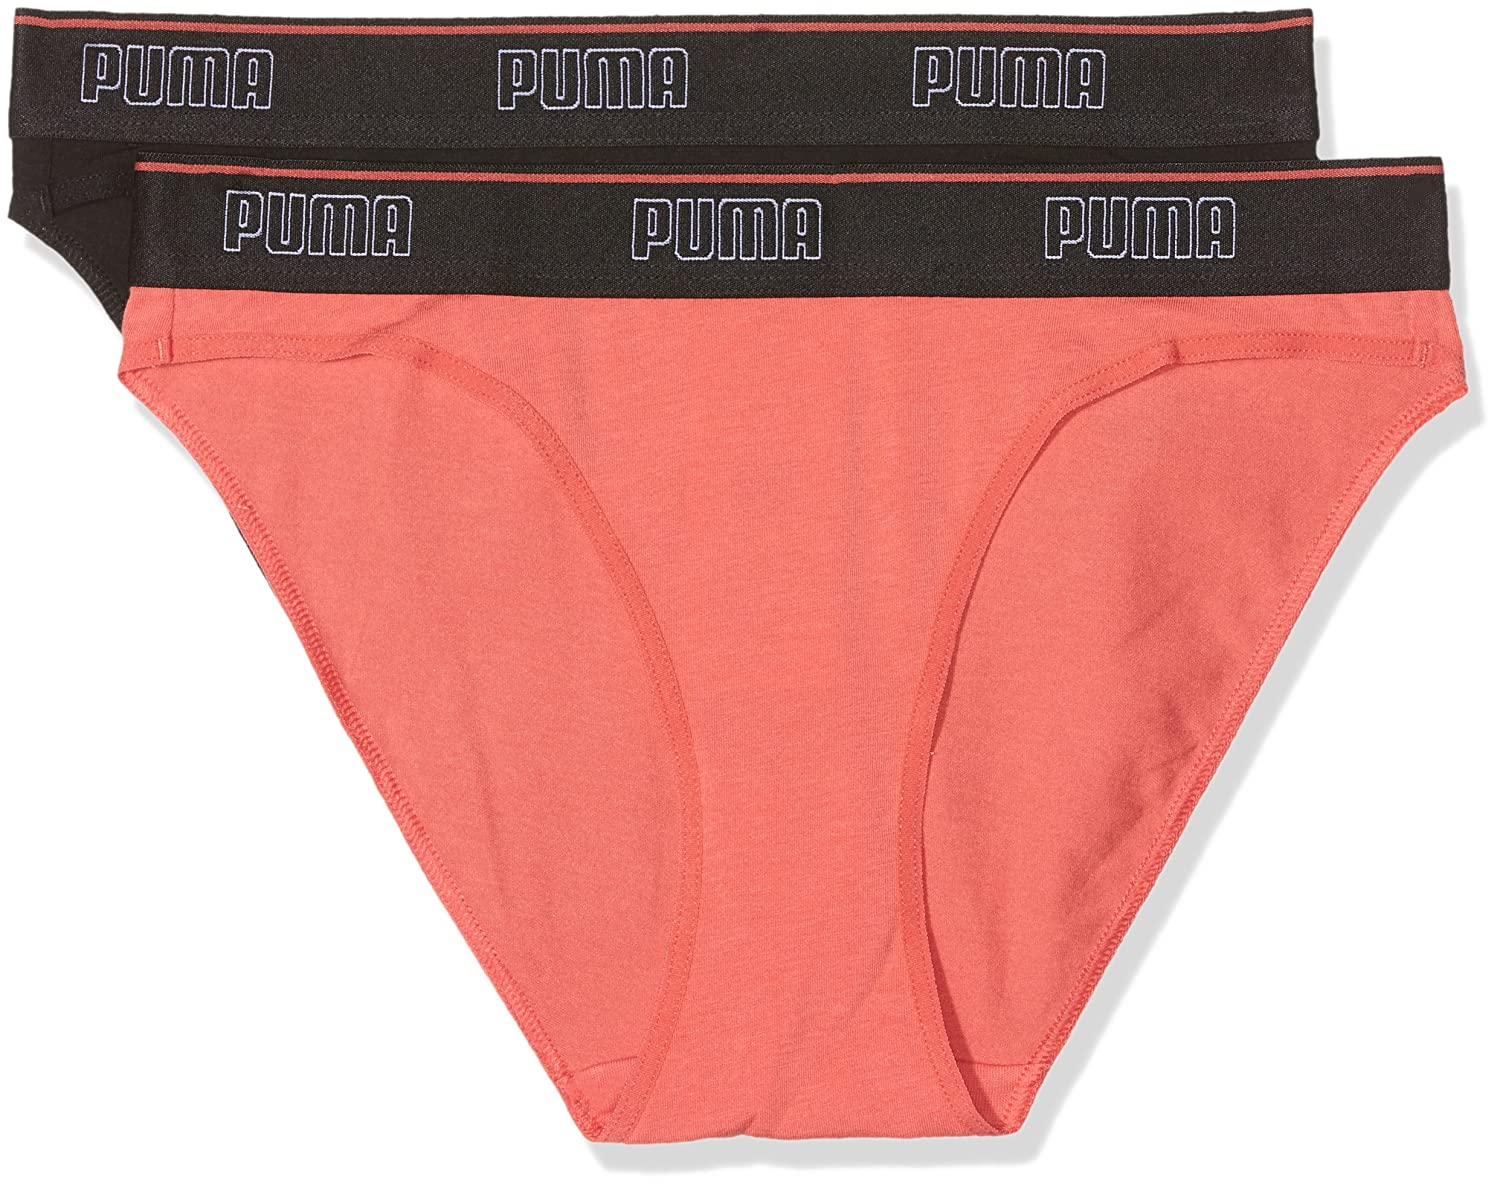 Puma Women's Sports Knickers Pack of 2 583014001